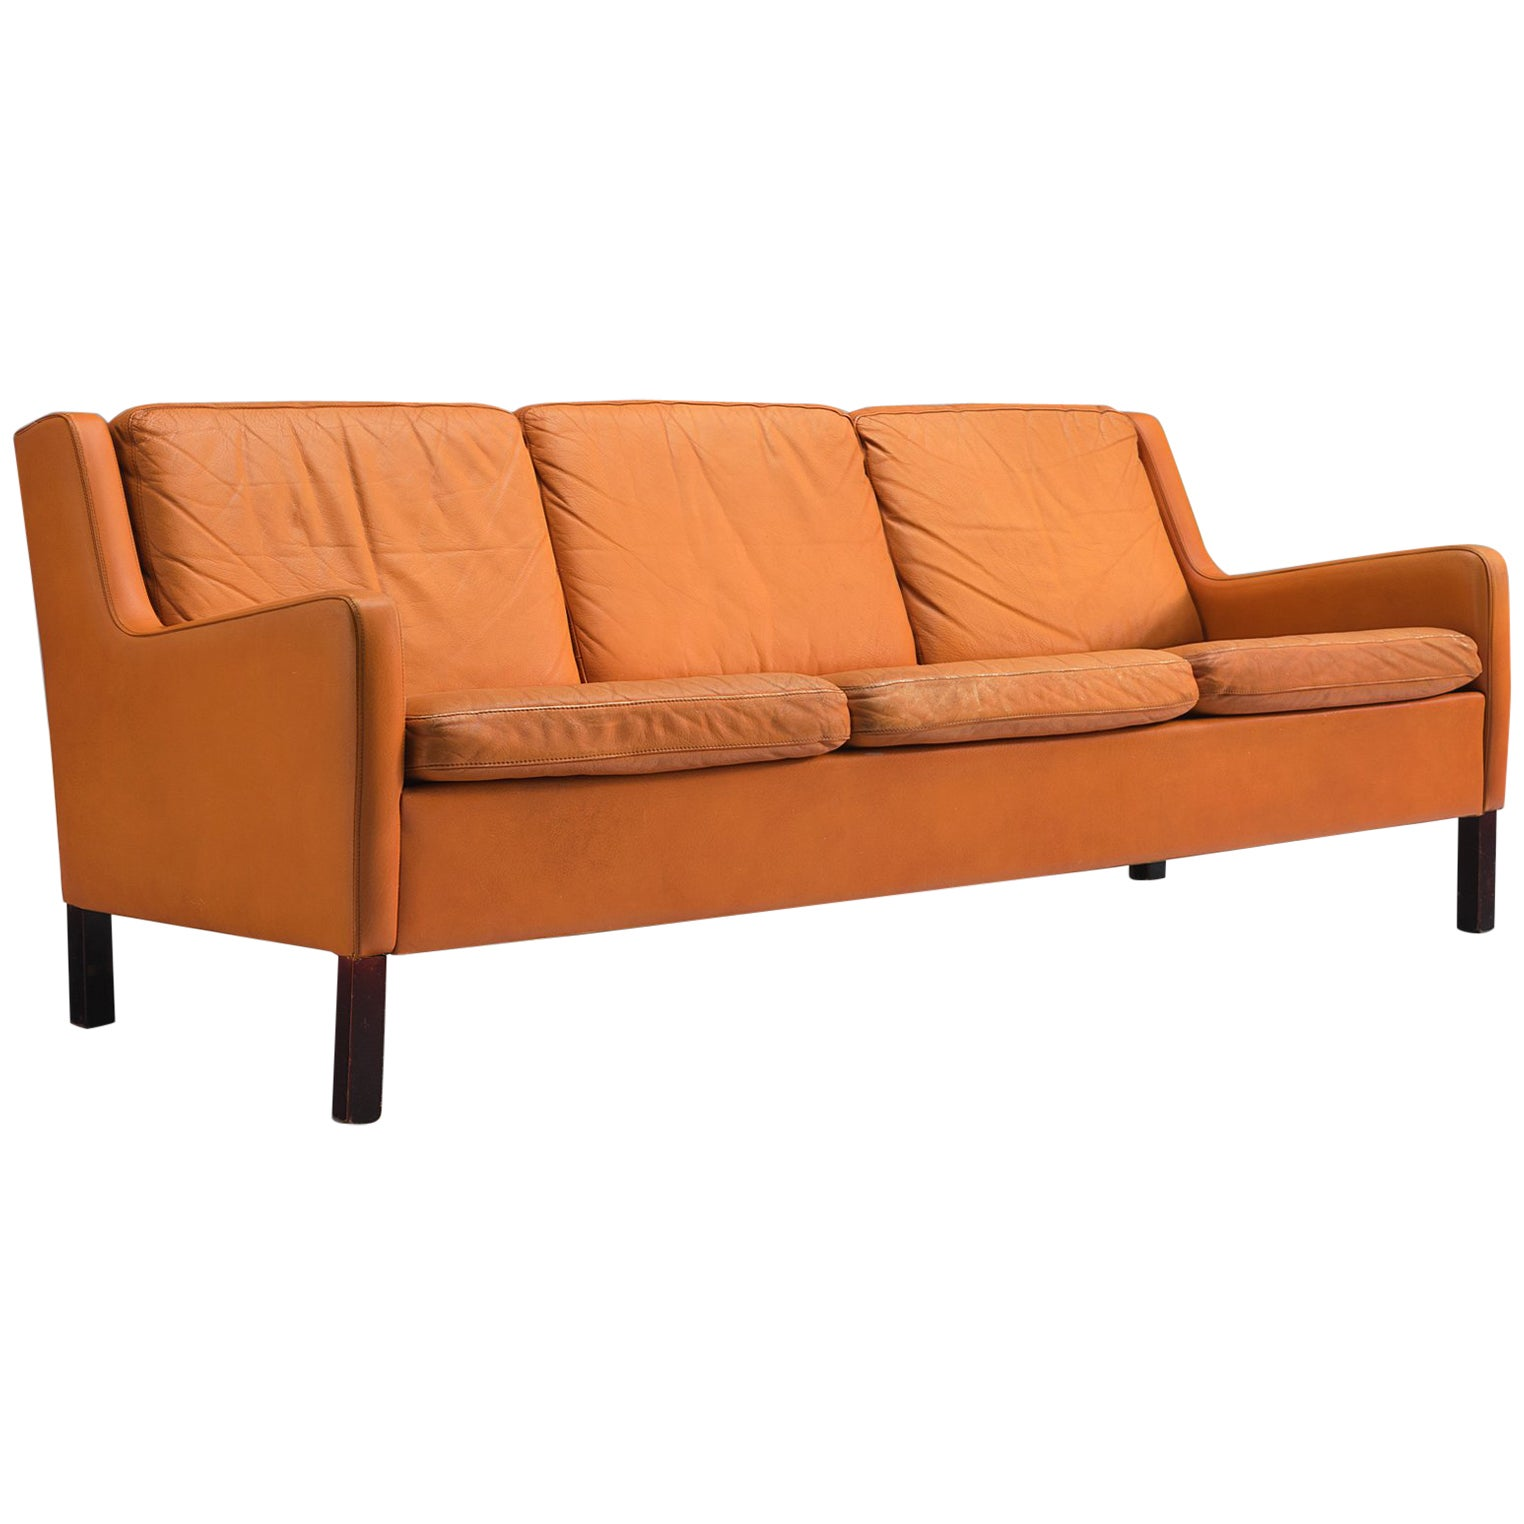 Danish Three-Seat Cognac Leather Sofa